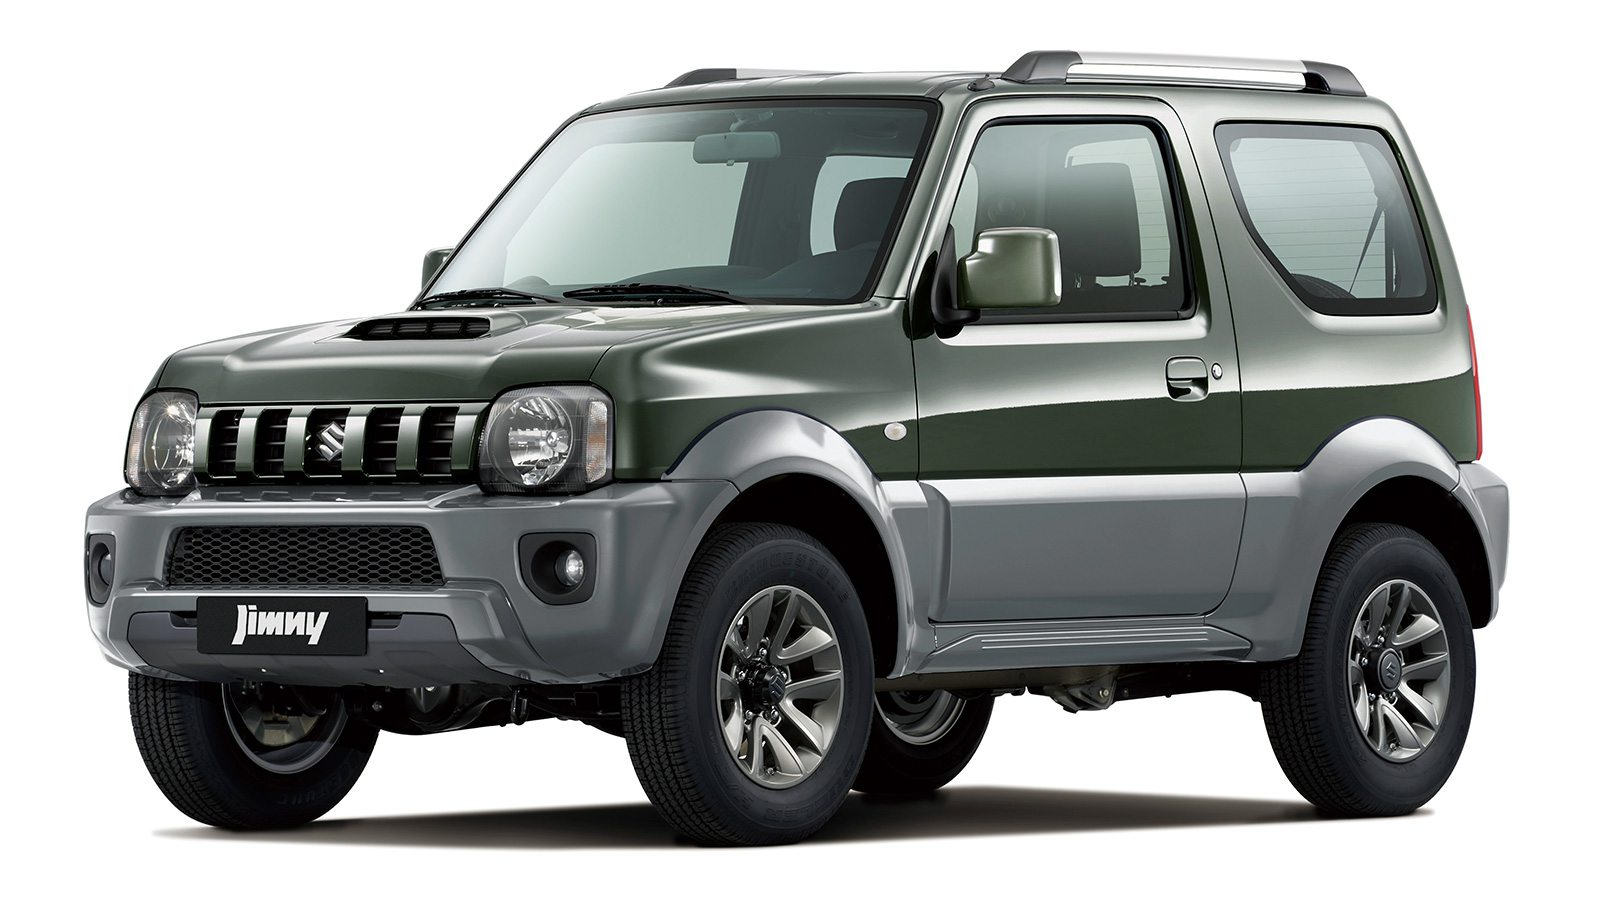 2017 suzuki jimny a t car 2017 suzuki jimny car price. Black Bedroom Furniture Sets. Home Design Ideas